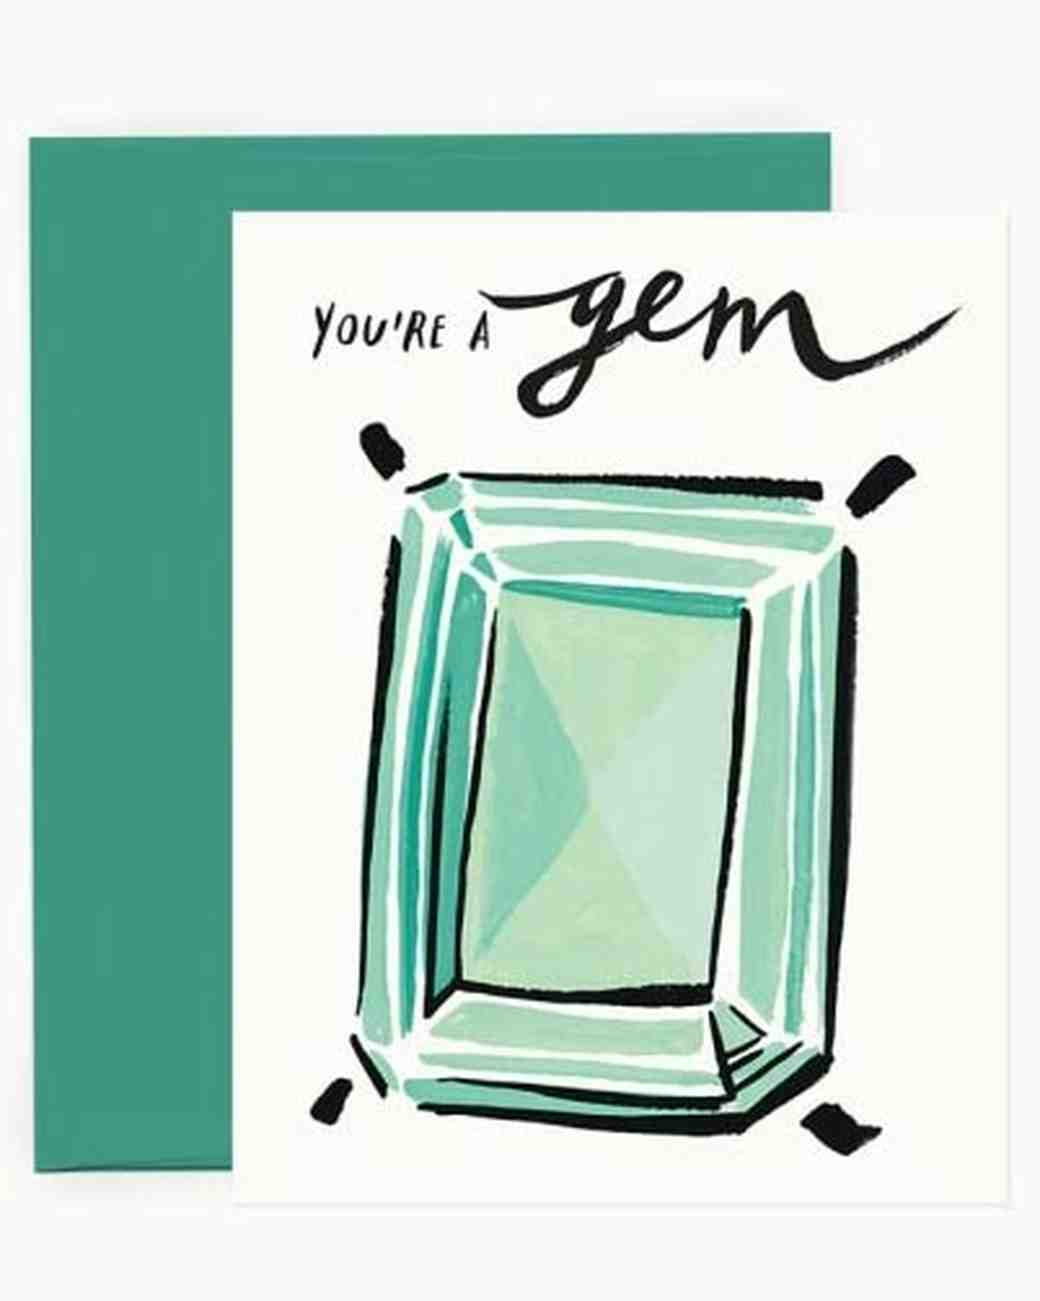 vday-cards-we-love-idlewild-company-youre-a-gem-0216.jpg